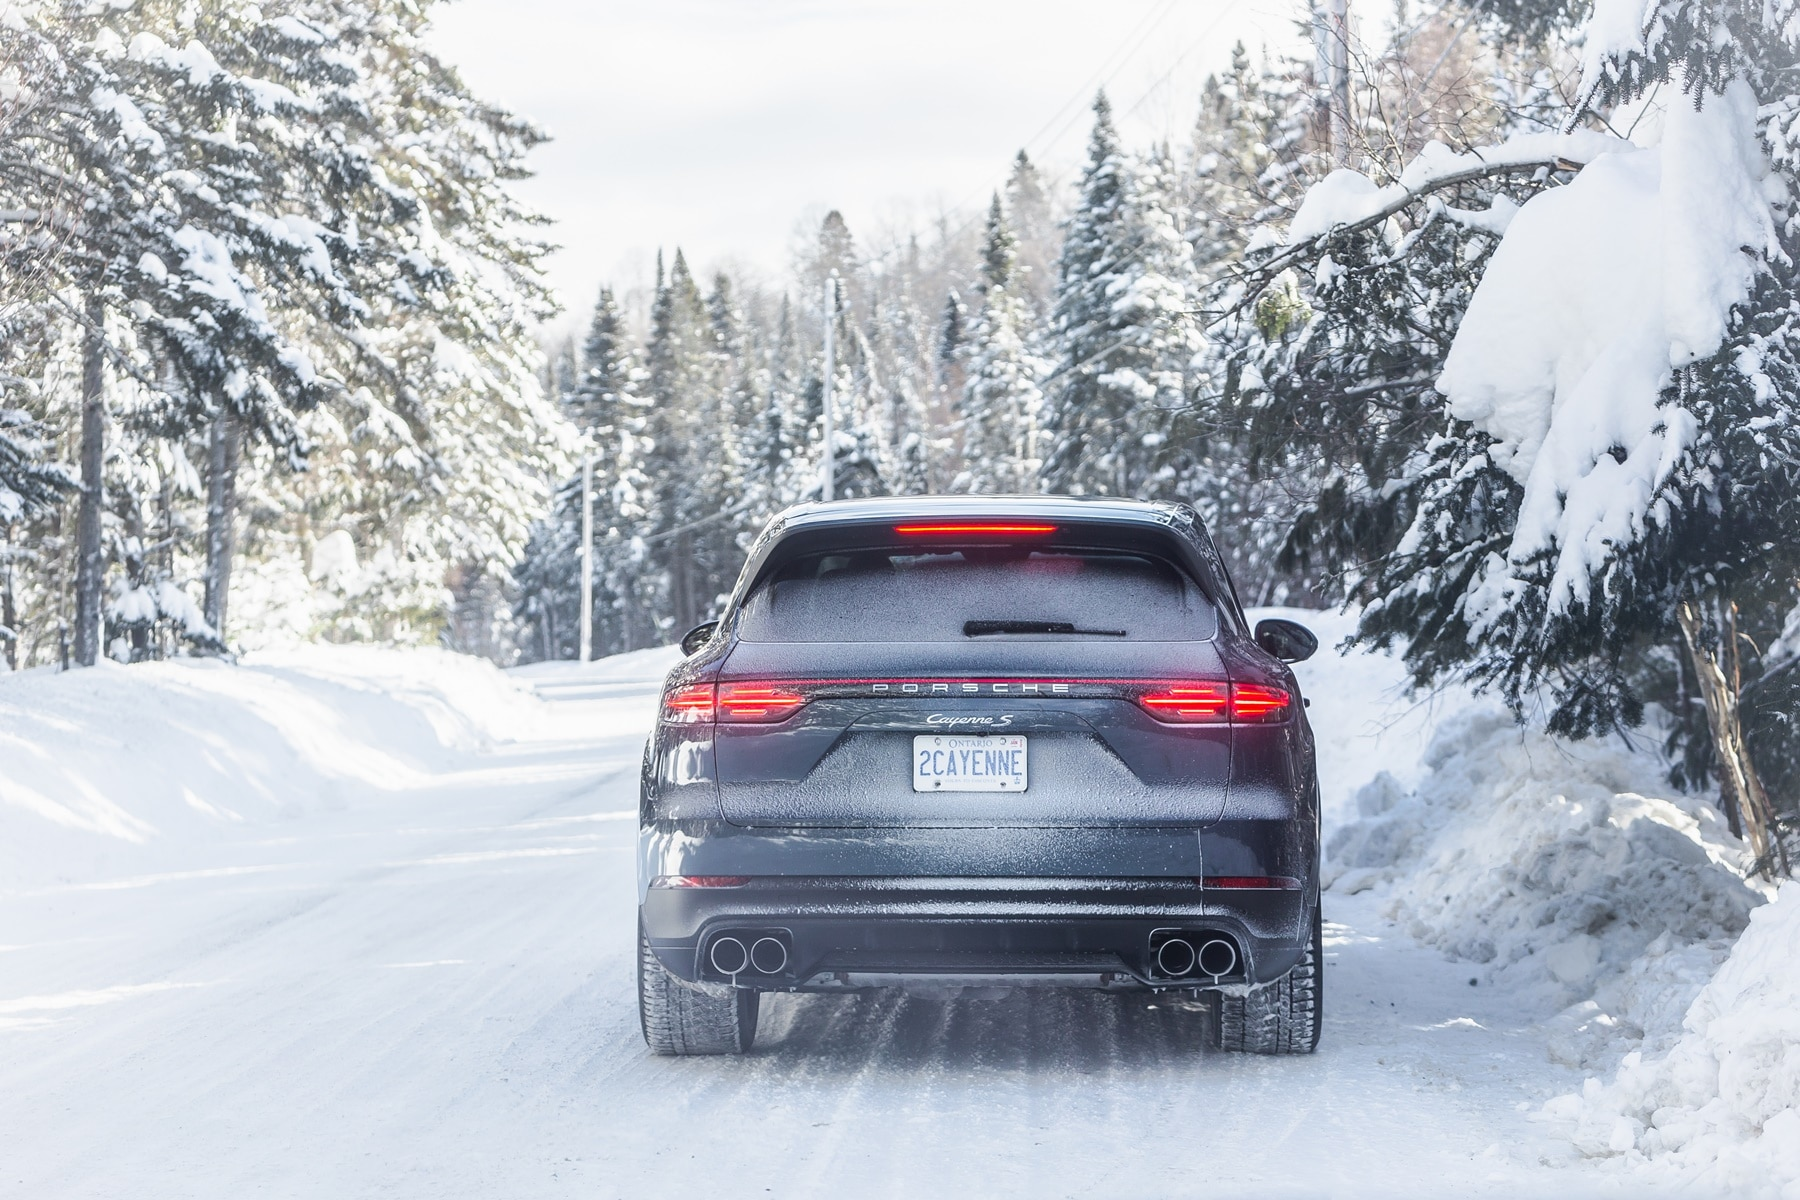 2019 Porsche Cayenne S Review: S is For Shnell - Motor